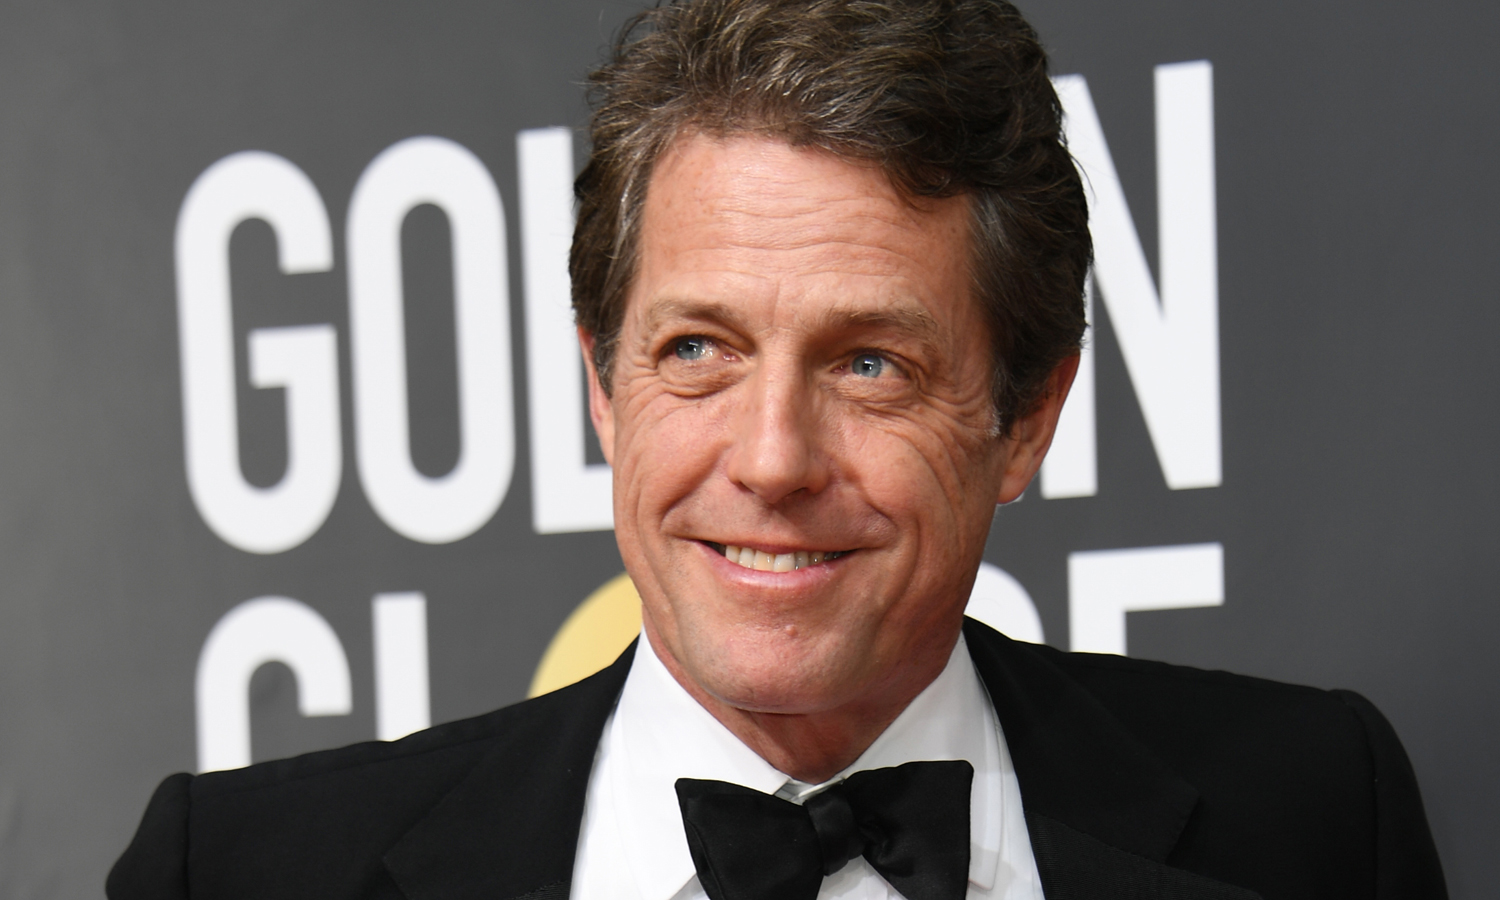 Hugh Grant gets Phone Hacking Settlement from UK Mirror Group